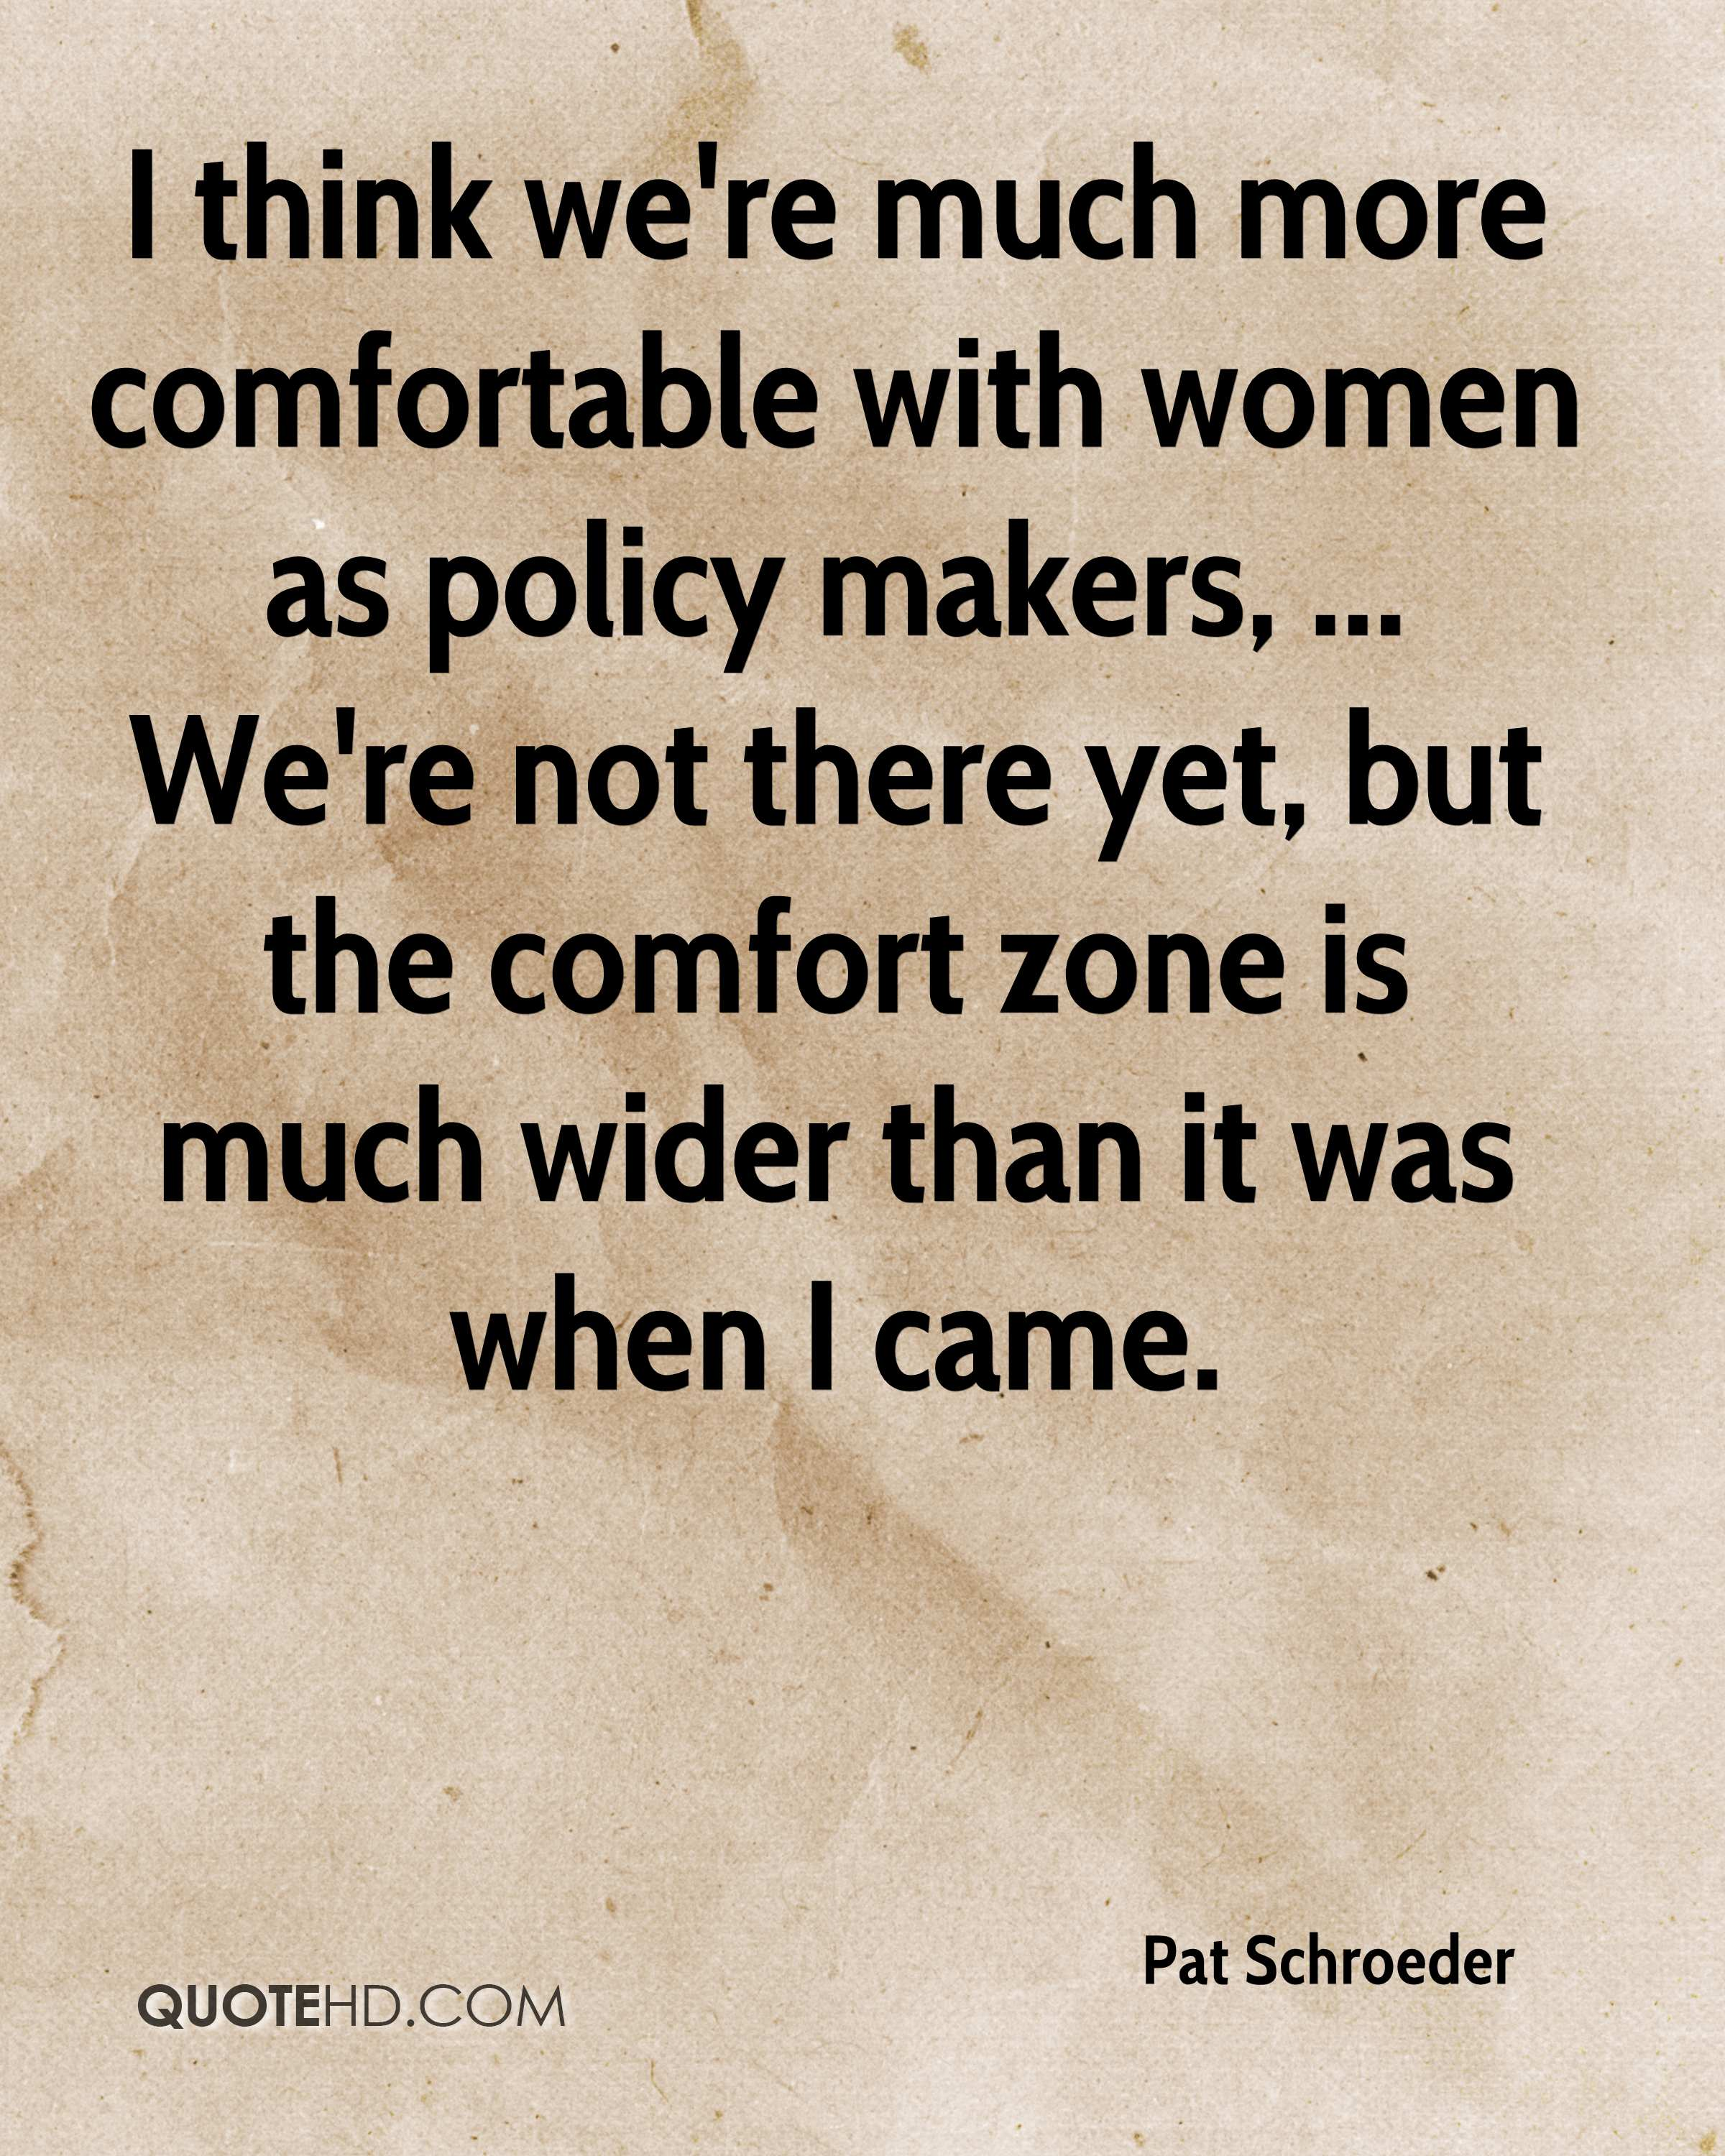 I think we're much more comfortable with women as policy makers, ... We're not there yet, but the comfort zone is much wider than it was when I came.